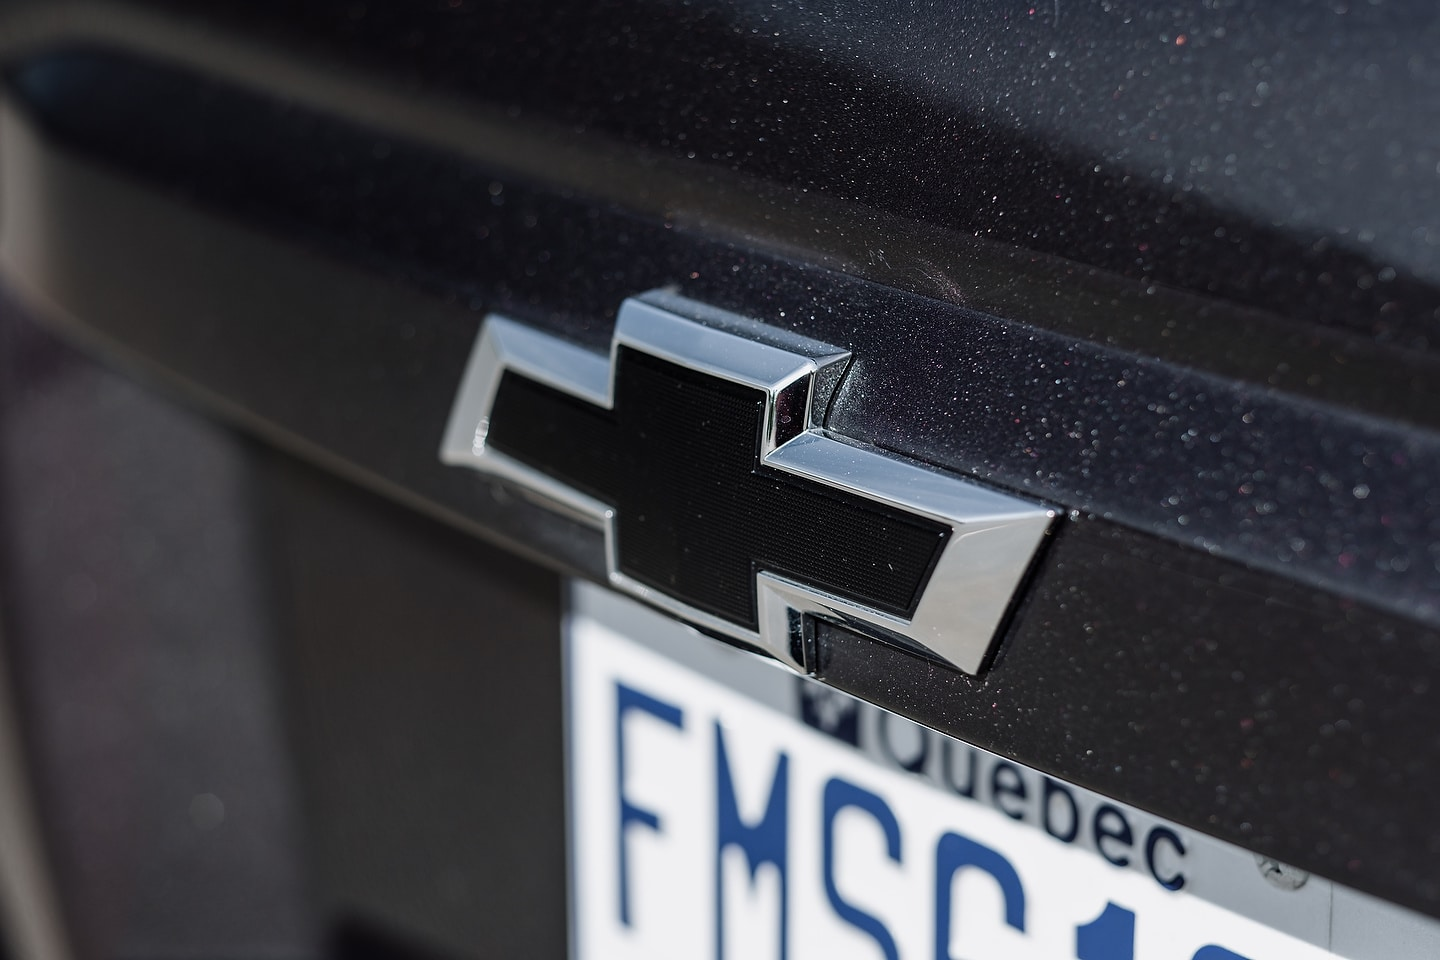 2018 Chevrolet Tahoe Premier RST badge